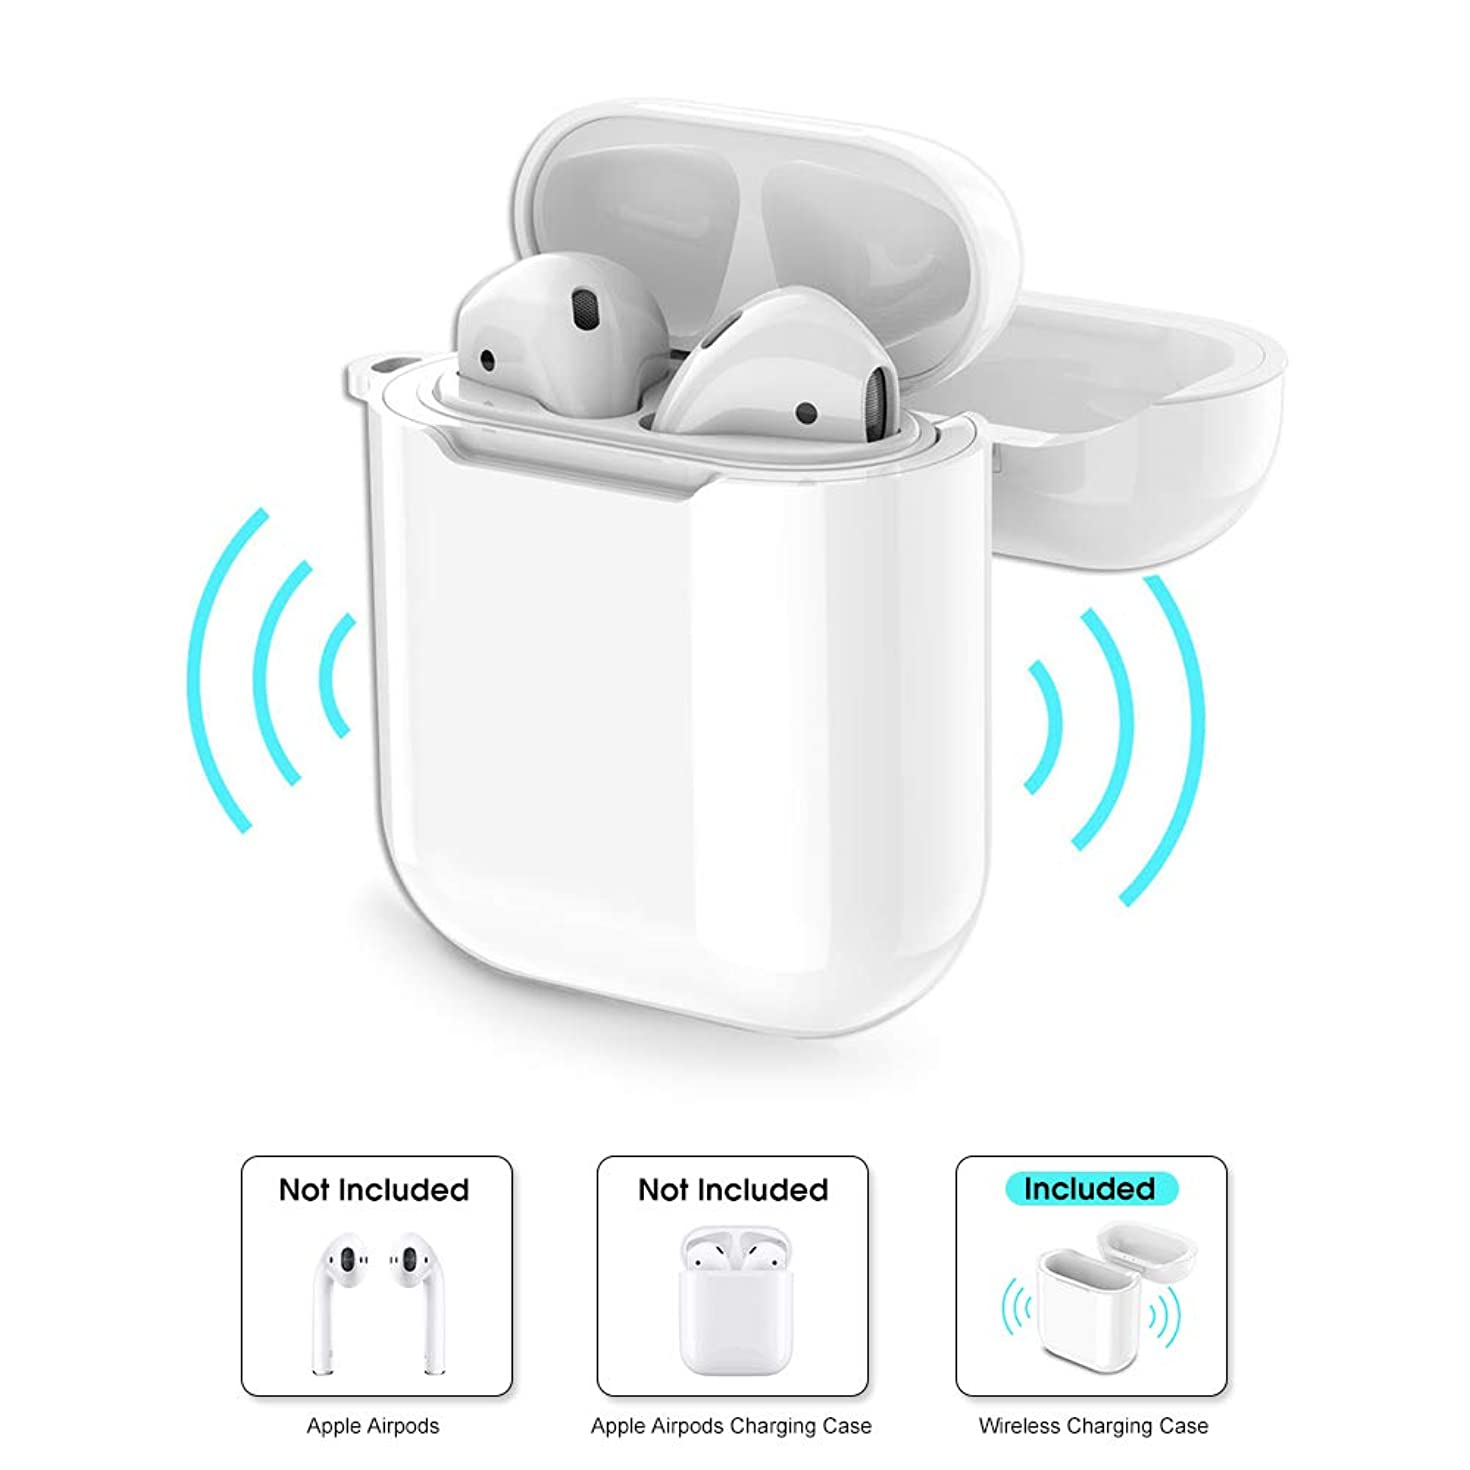 Wireless Carrying Case for Apple AirPods Charging Case, Protective Case Compatible with QI Wireless Charger by Leakind